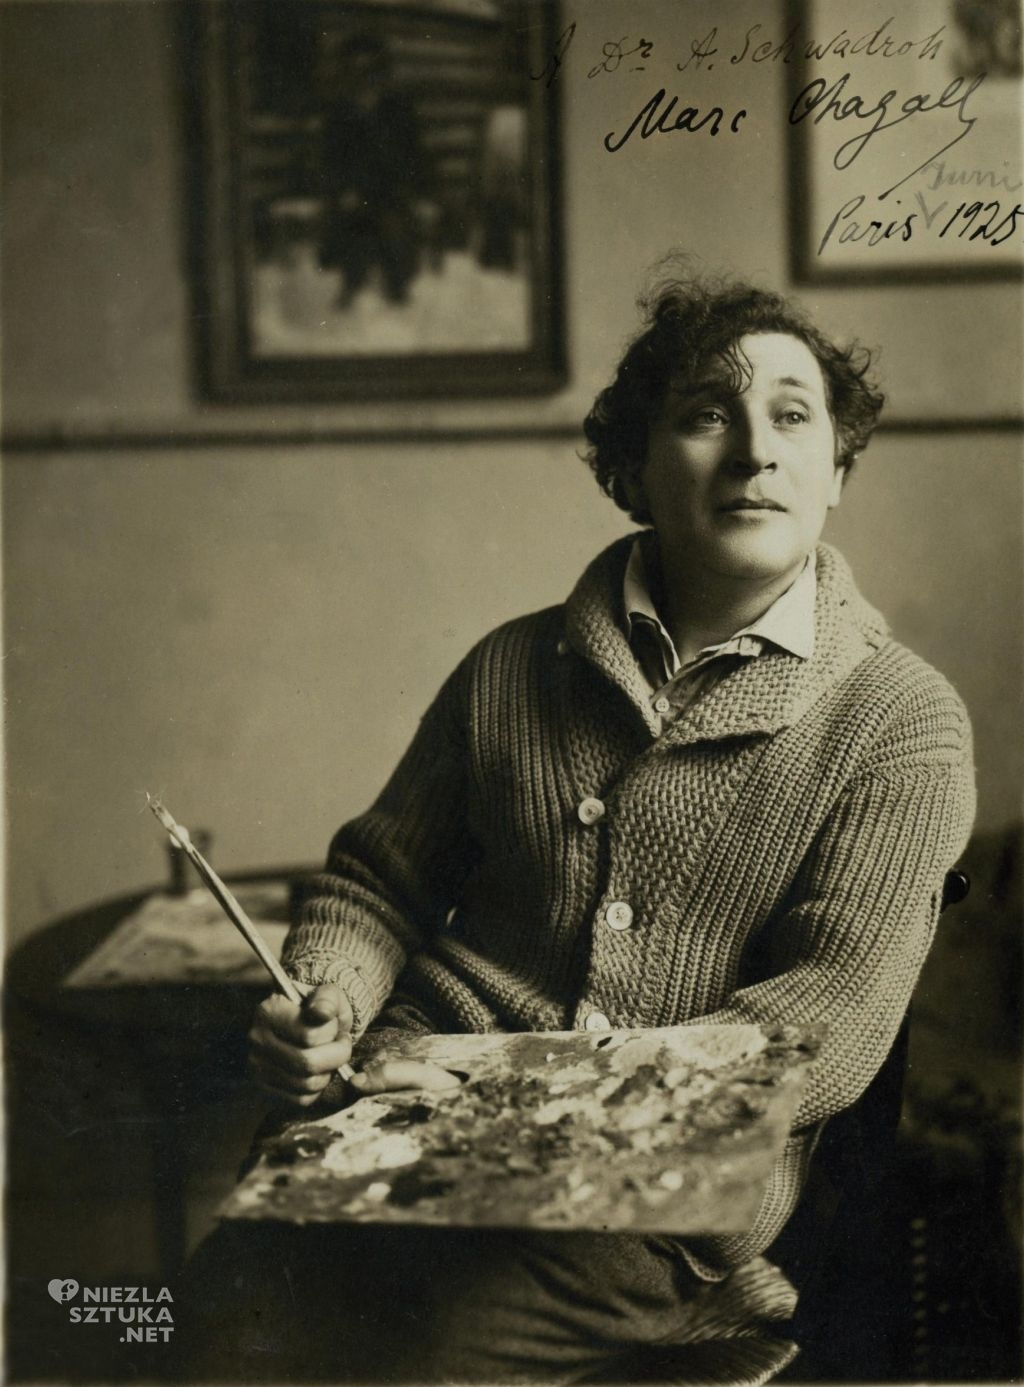 Marc Chagall | ok. 1920, Paryż, fot. Courtesy of the Jewish National University Library, źródło: segulamag.com